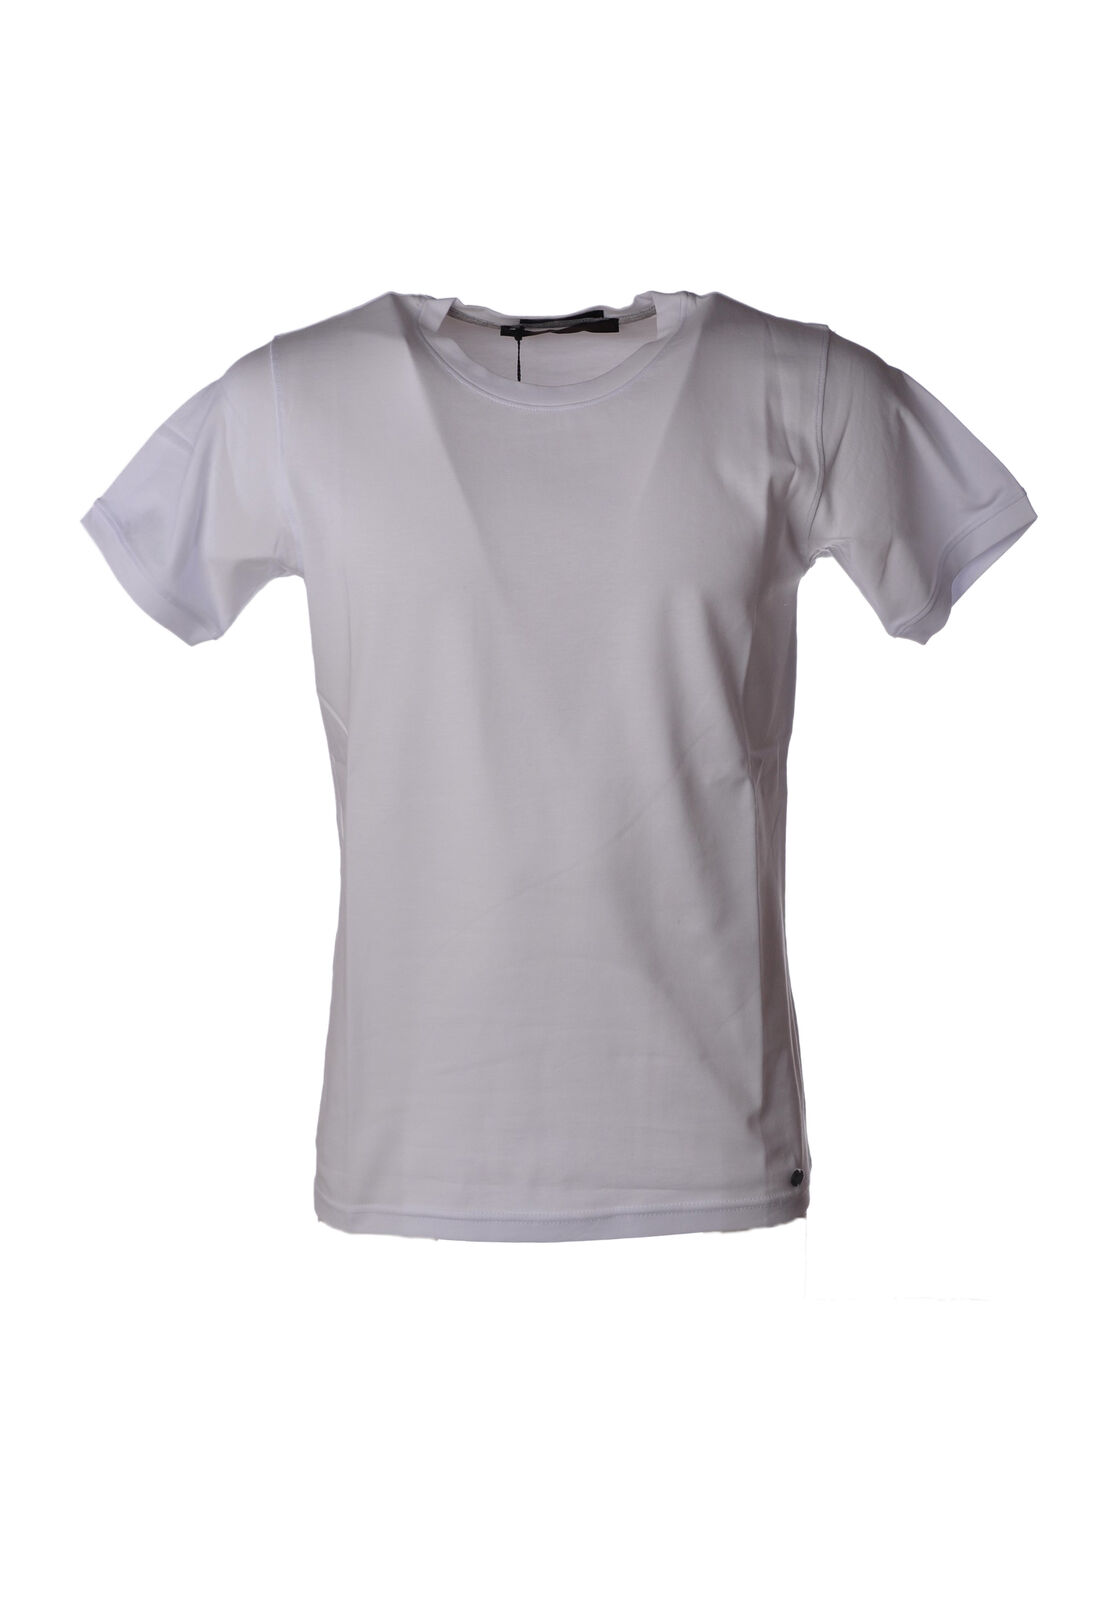 Laboratori Italiani - Topwear-T-shirts - Man - White - 5018405C184342